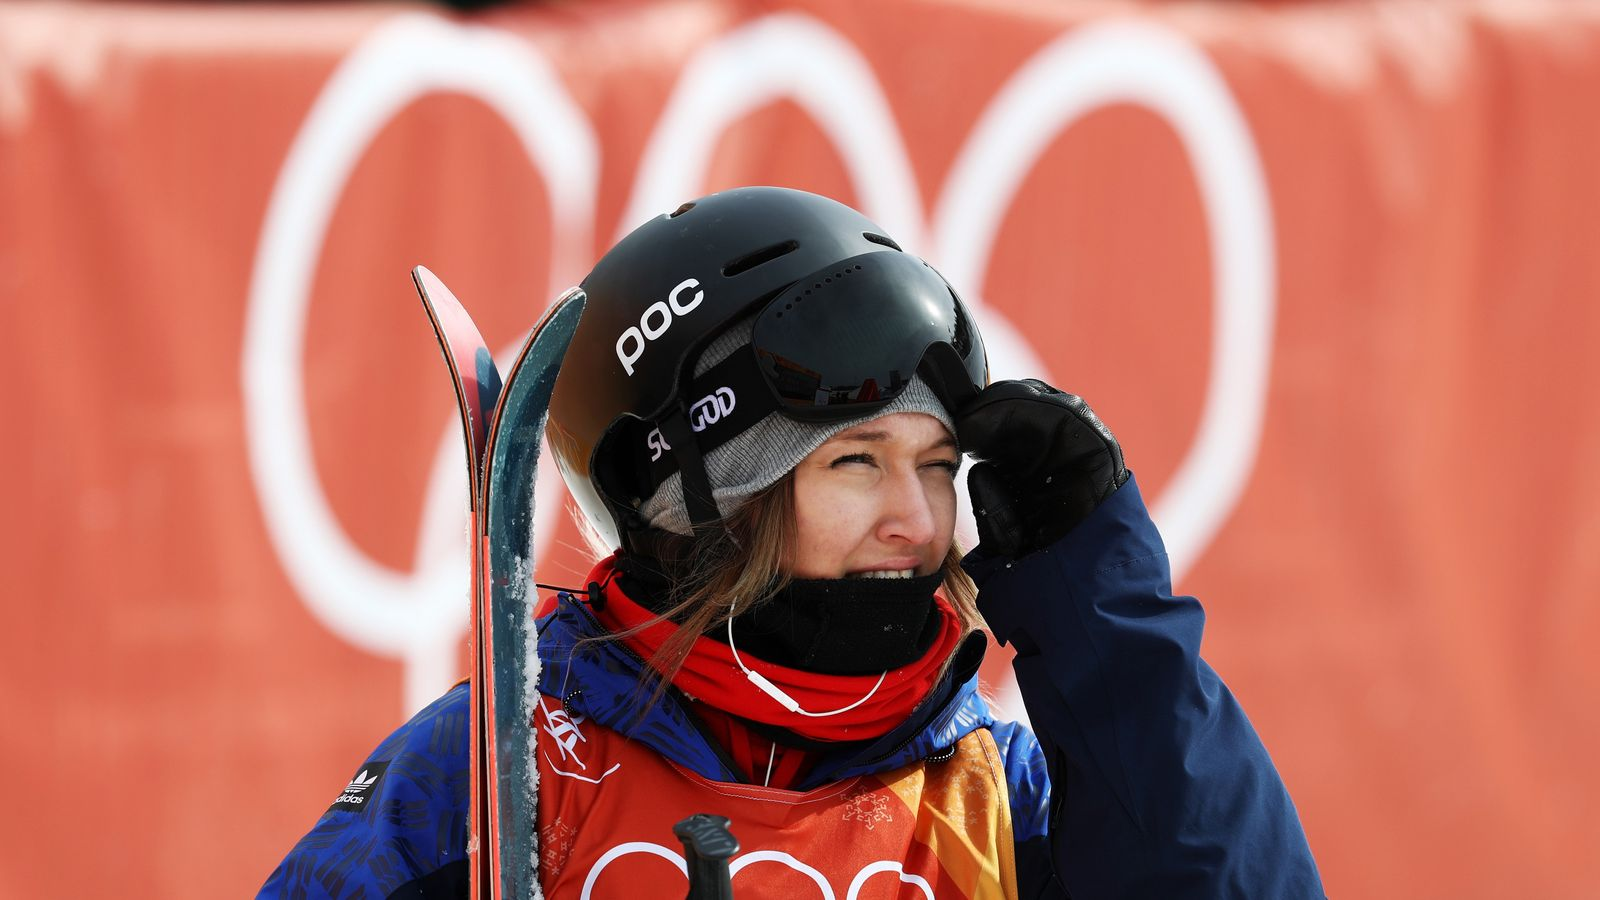 Rowan Cheshire: GB Olympic freestyle skier retires aged 24, citing concussion effects